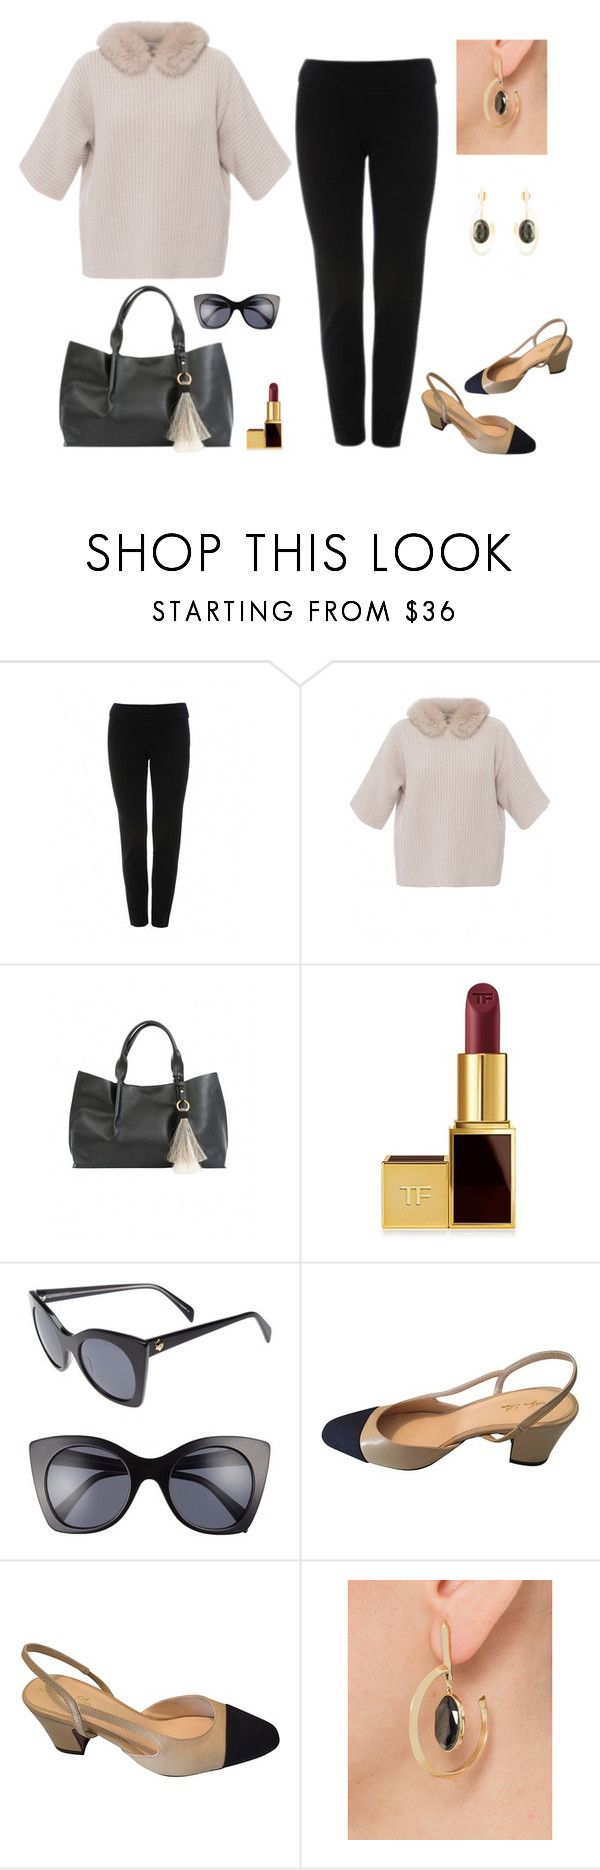 """""""Office Ready!"""" by stylebyjonathan ❤ liked on Polyvore featuring Oliveve, Tom Ford, Draper James and Sarah Magid"""